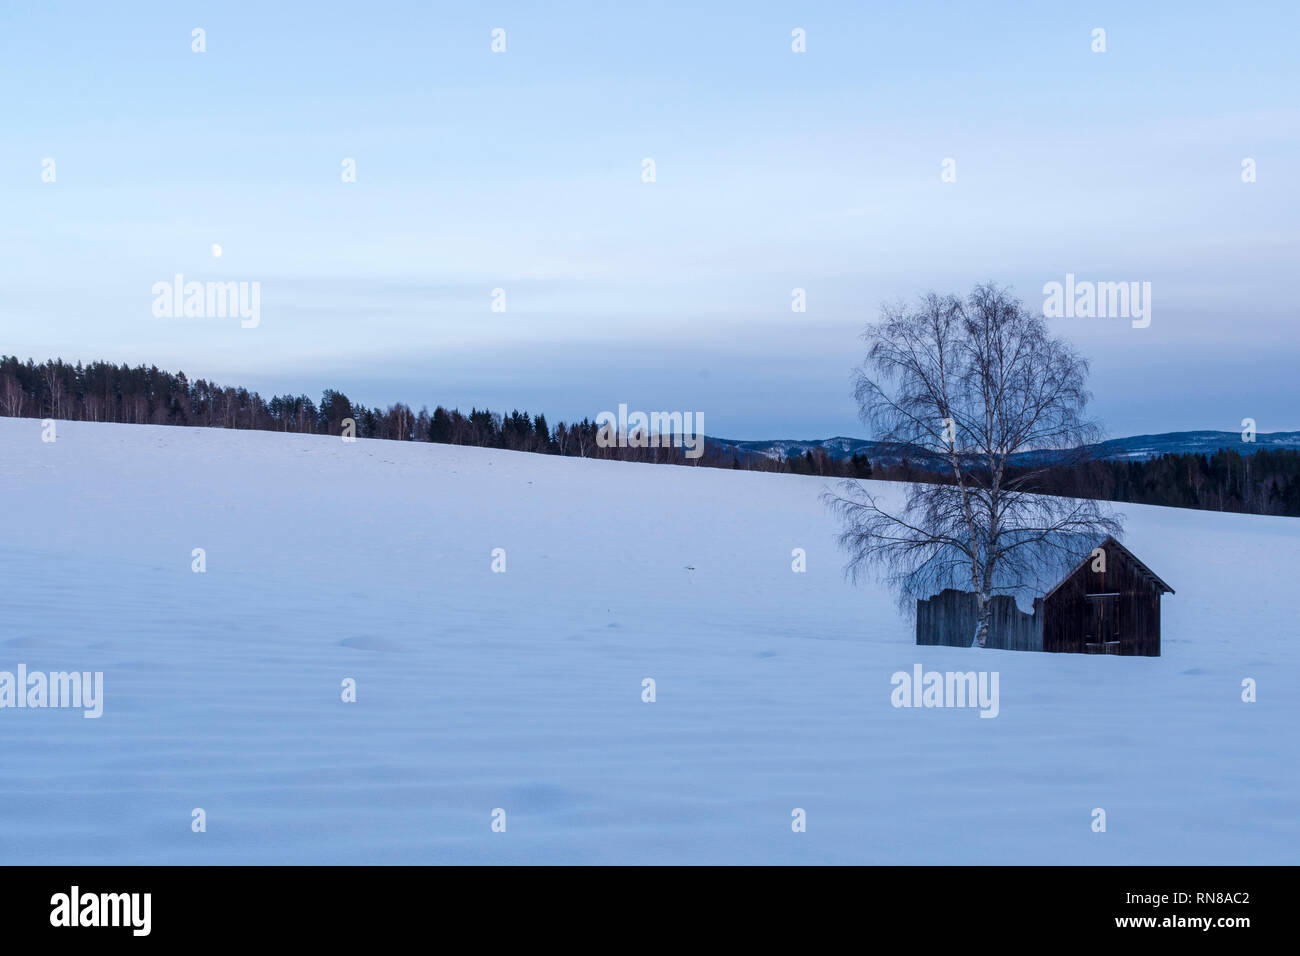 Old barn and a birch on a snowcovered meadow with forest in background and a sky with the moon visible, picture from Northern Sweden. - Stock Image